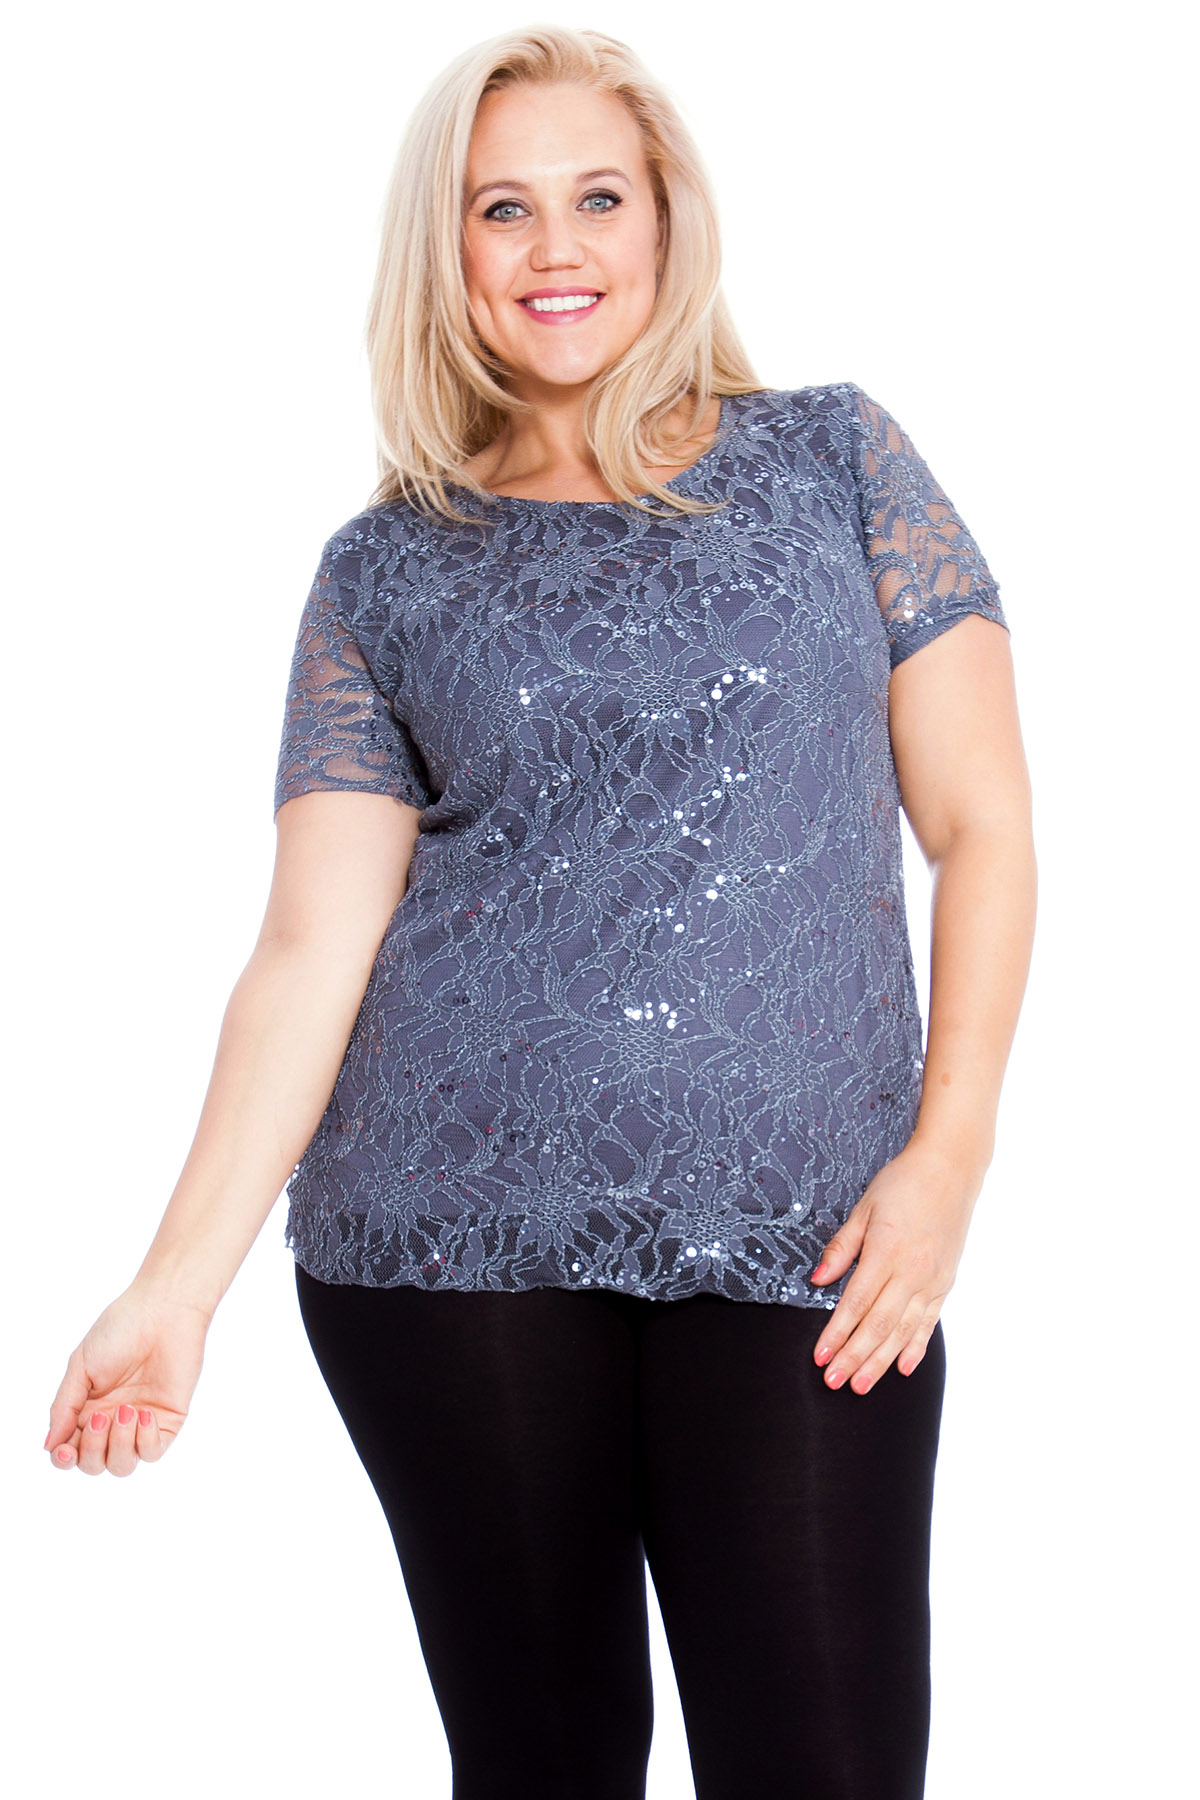 Plus Size Blouses: White, Denim & More | TorridSizes  · Made for a Perfect Fit65,+ followers on Twitter.